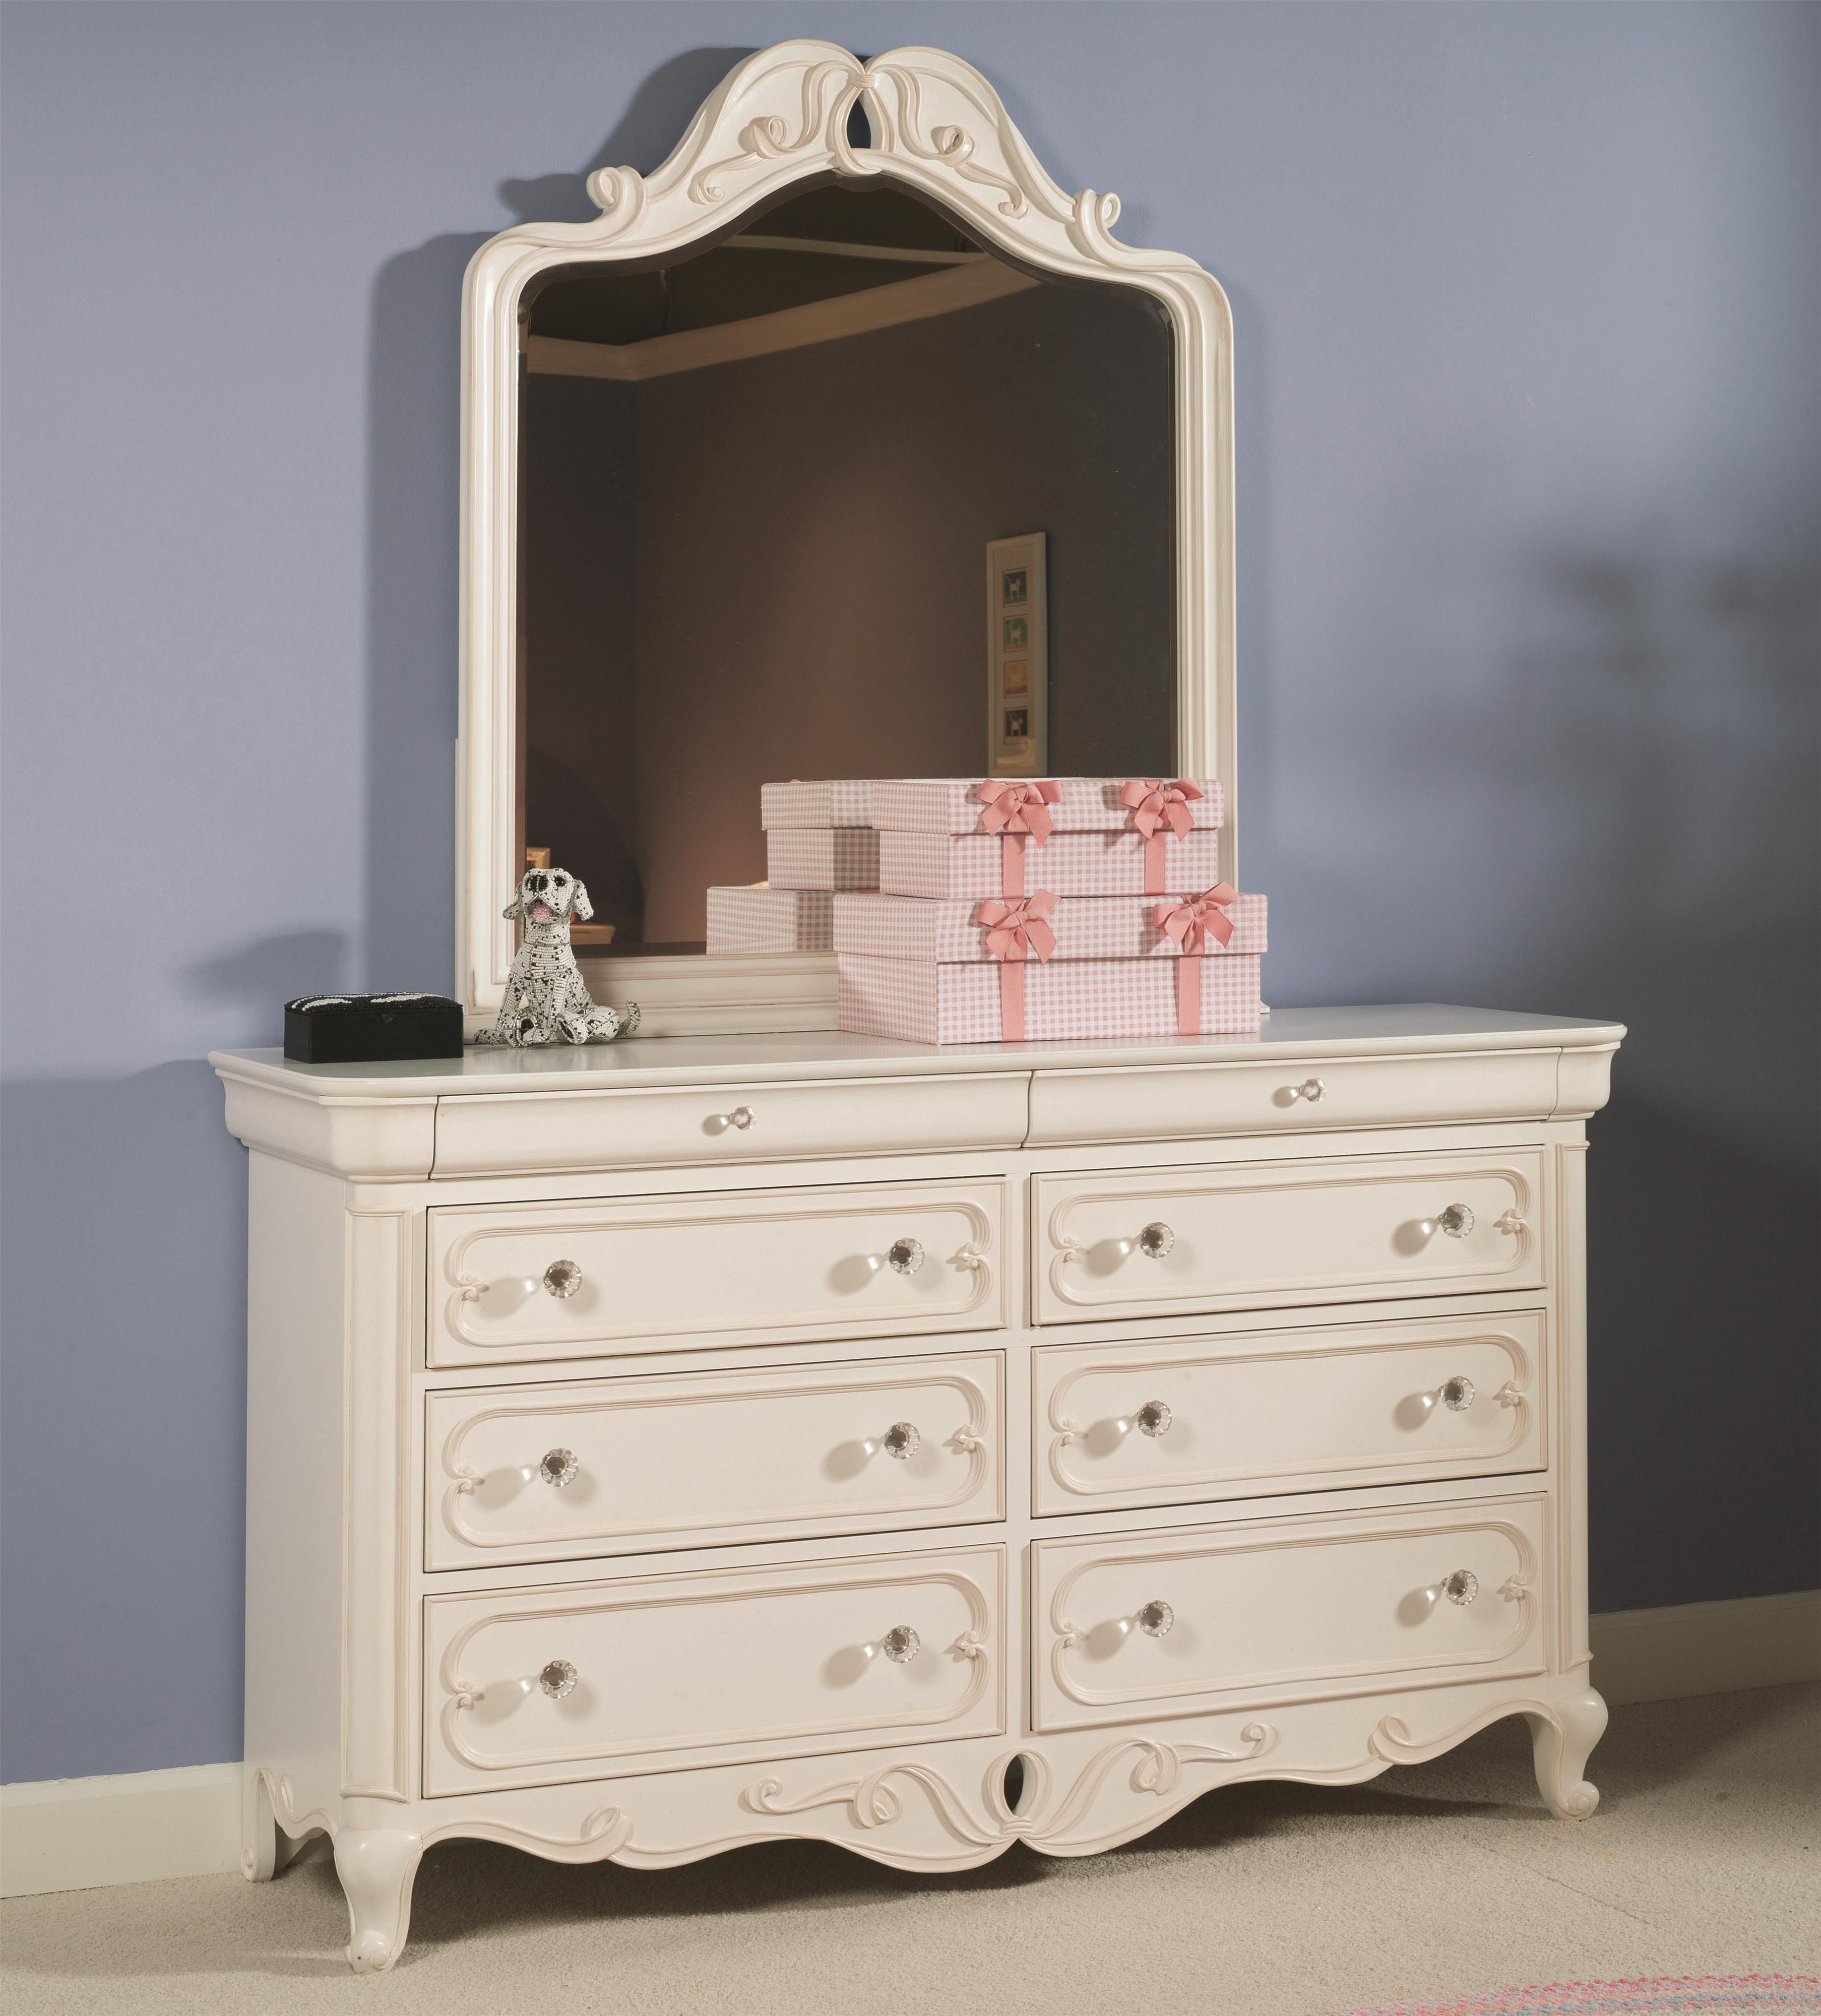 High Quality Vintage Boutique Dresser And Mirror Combo By Lea Industries   Stoney Creek  Furniture   Dresser U0026